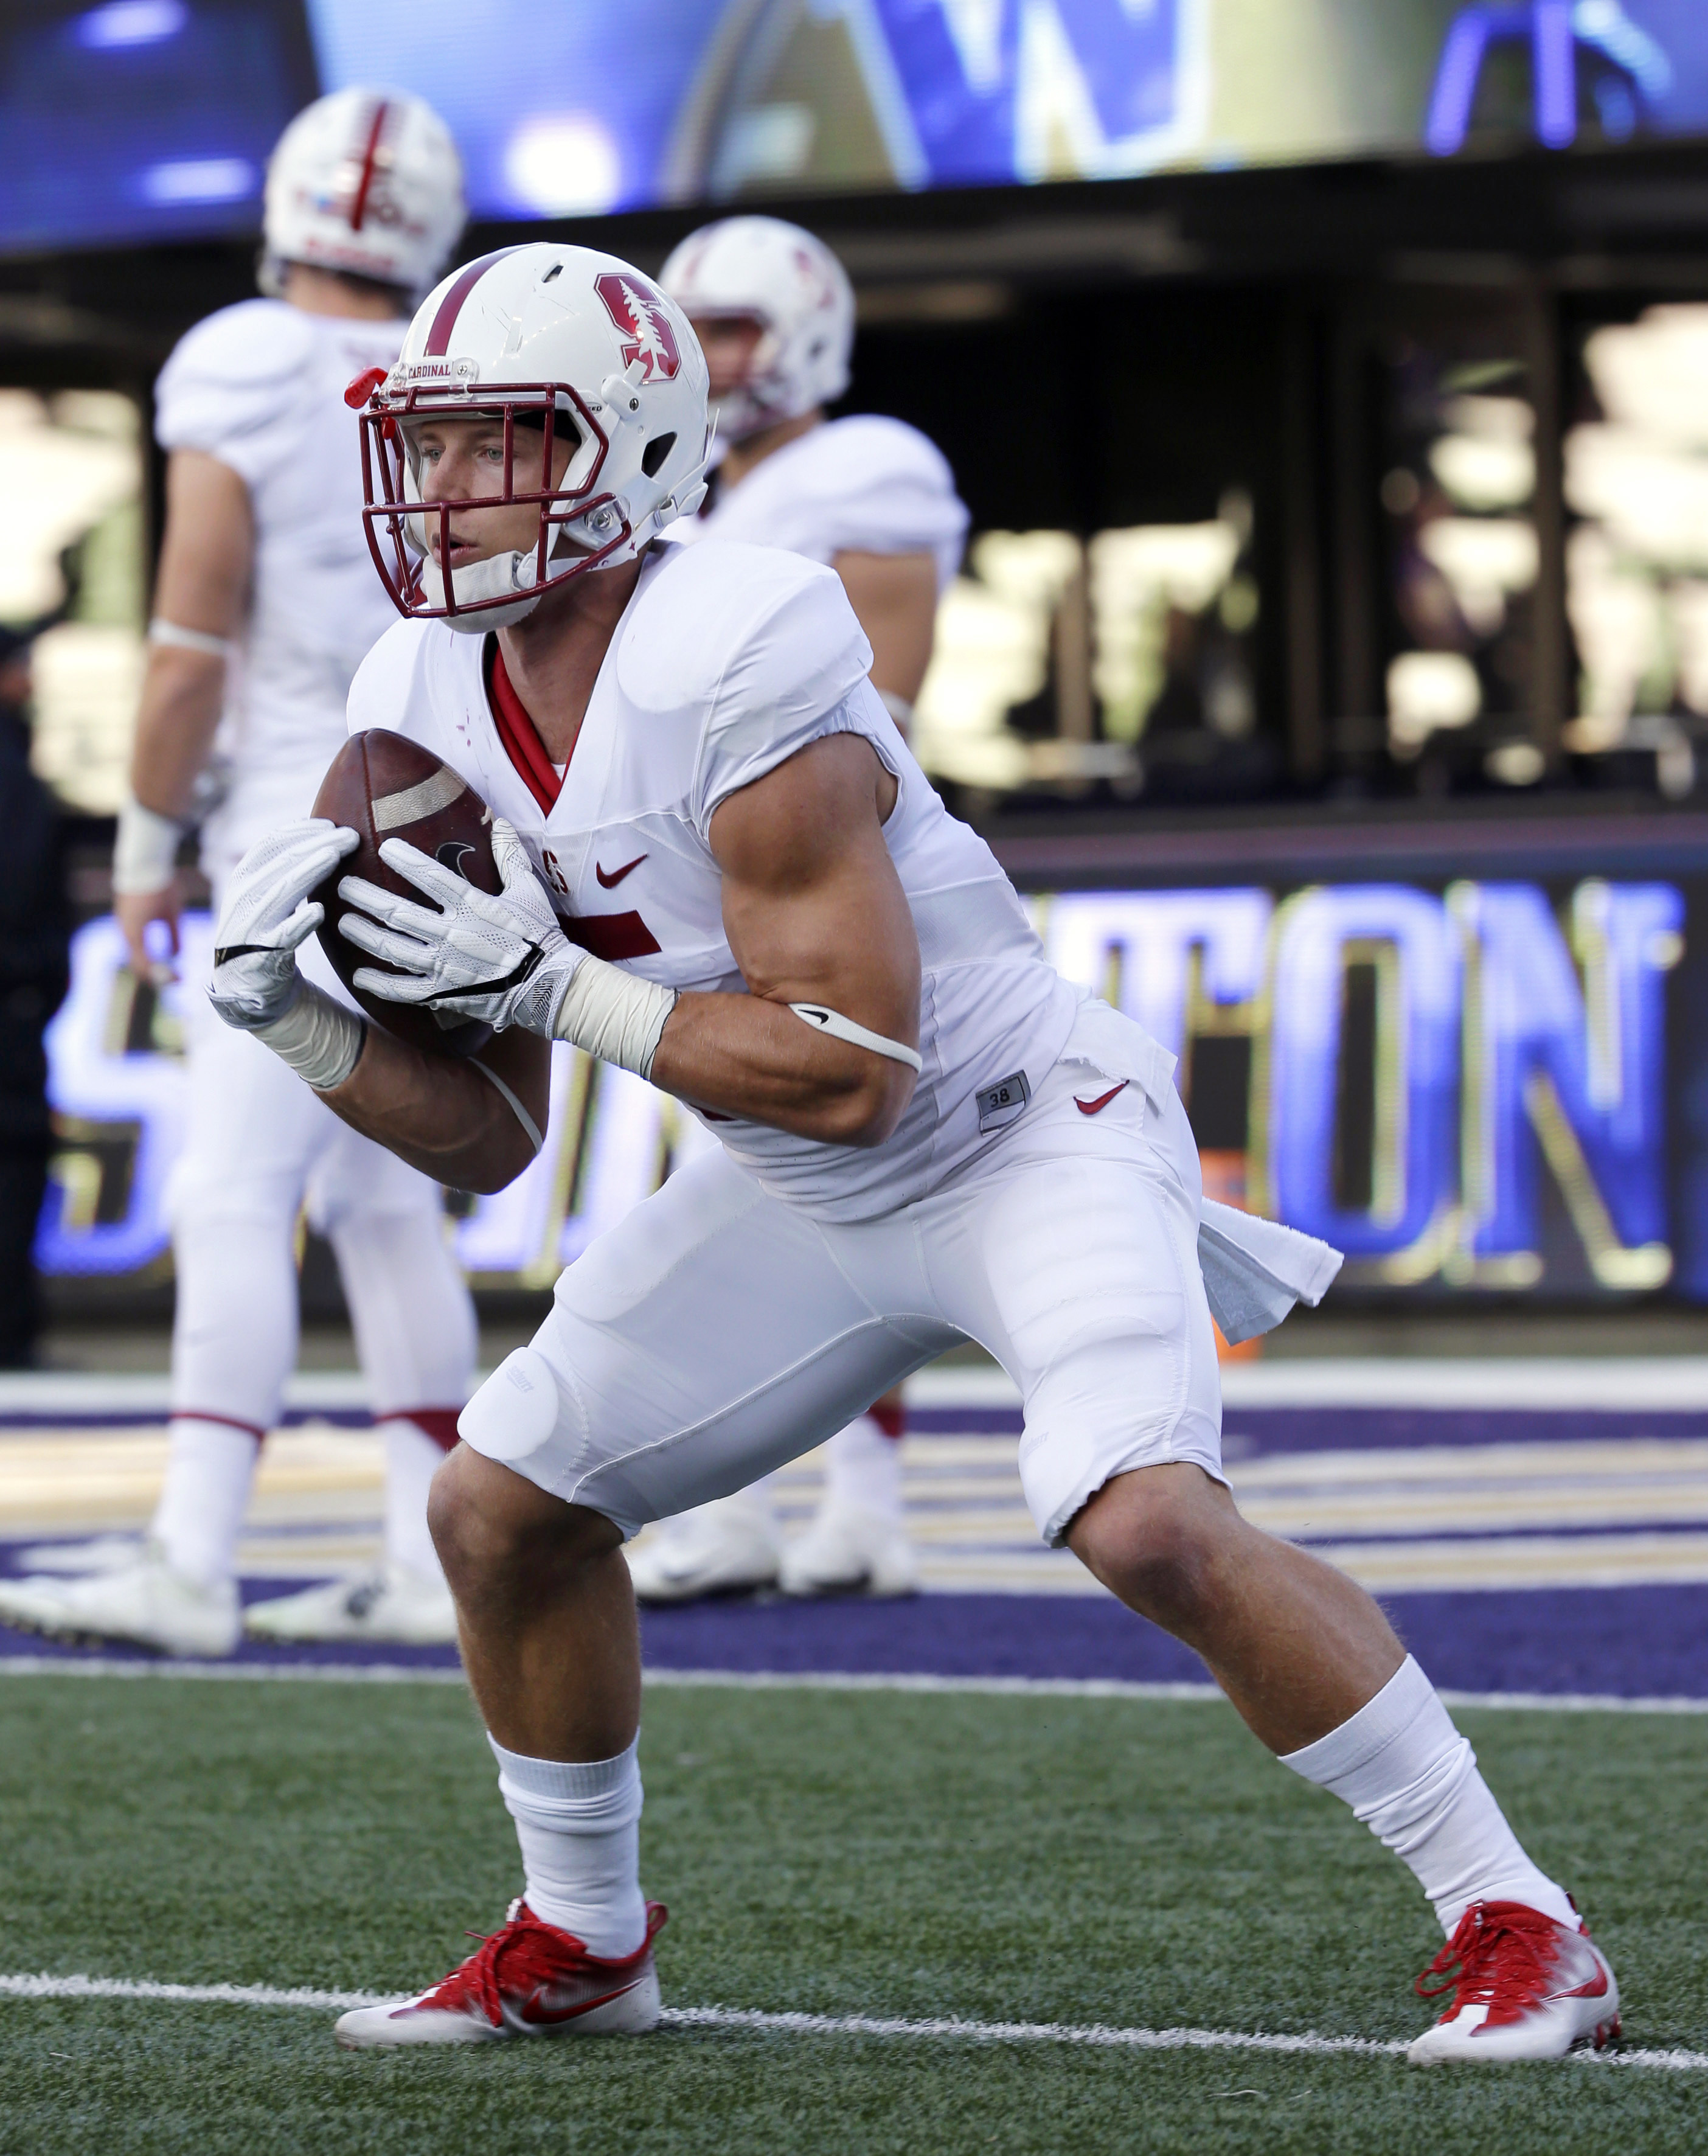 Stanford tight running back Christian McCaffrey warms up before an NCAA college football game against Washington, Friday, Sept. 30, 2016, in Seattle. (AP Photo/Ted S. Warren)